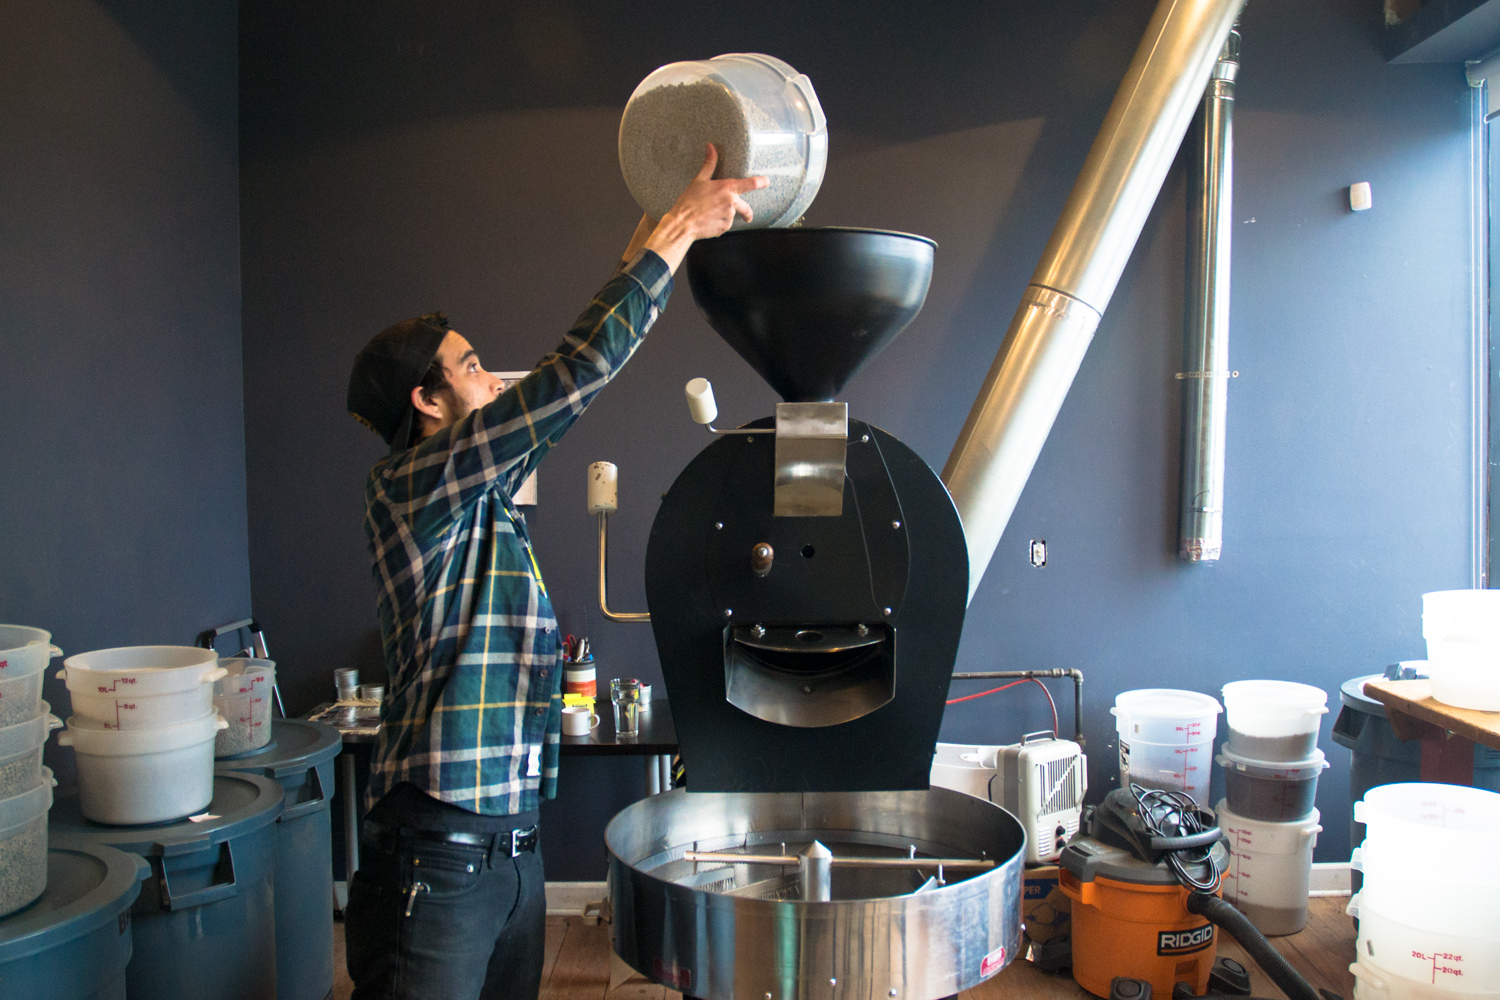 Dumping into the top of the roaster